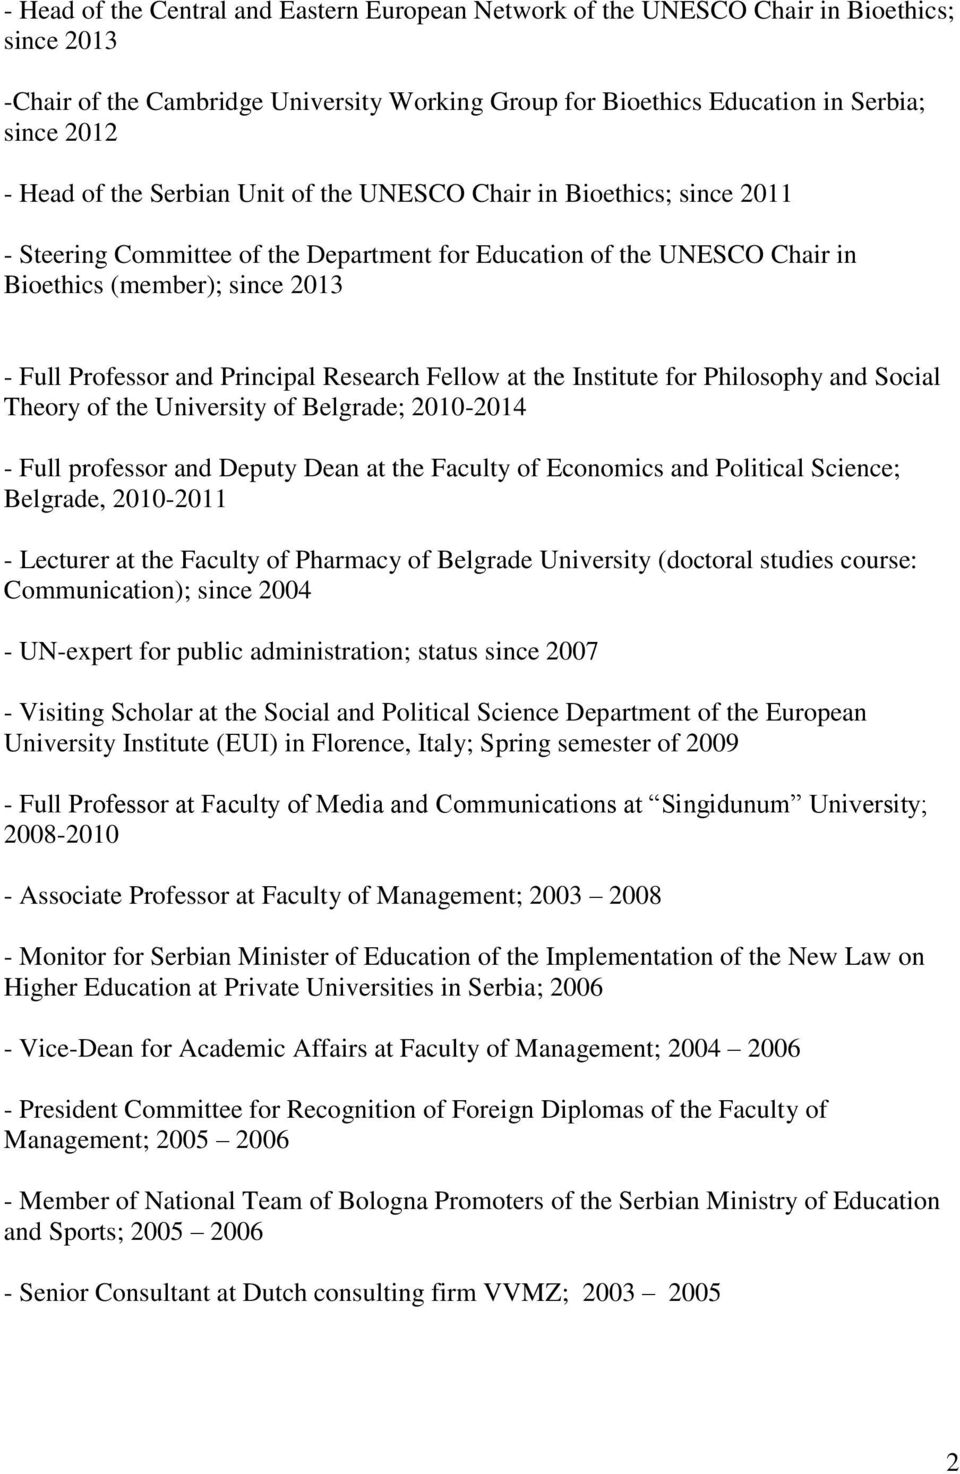 Principal Research Fellow at the Institute for Philosophy and Social Theory of the University of Belgrade; 2010-2014 - Full professor and Deputy Dean at the Faculty of Economics and Political